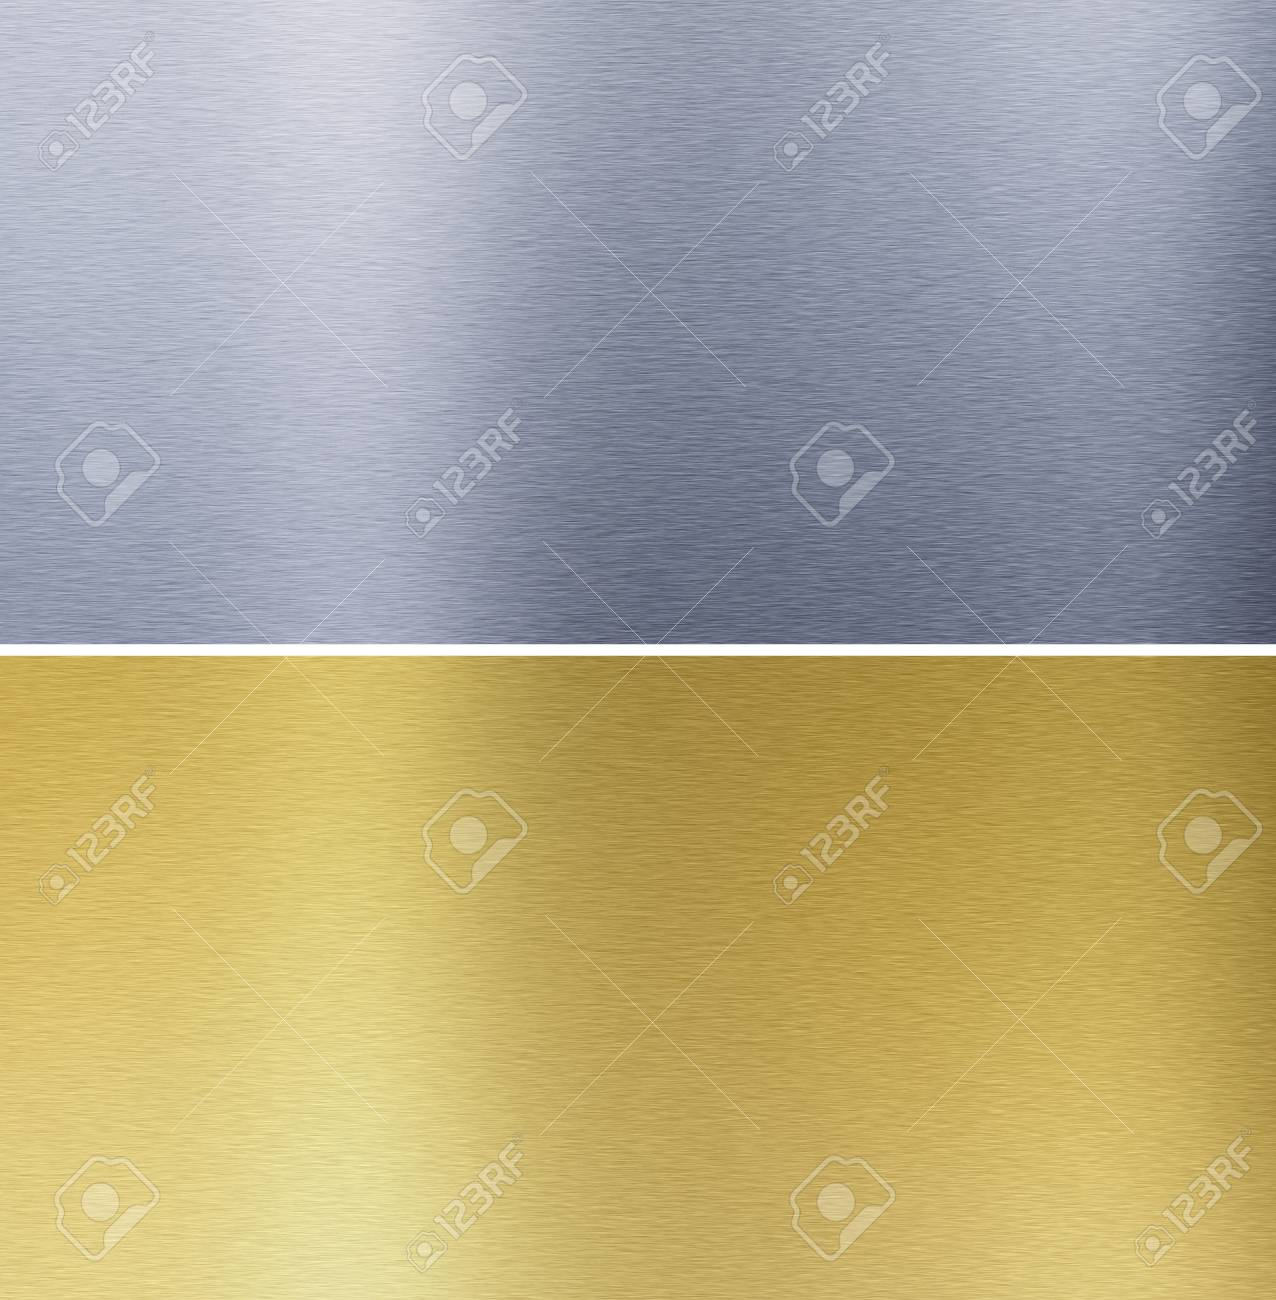 Aluminum and brass stitched textures Stock Photo - 8582072